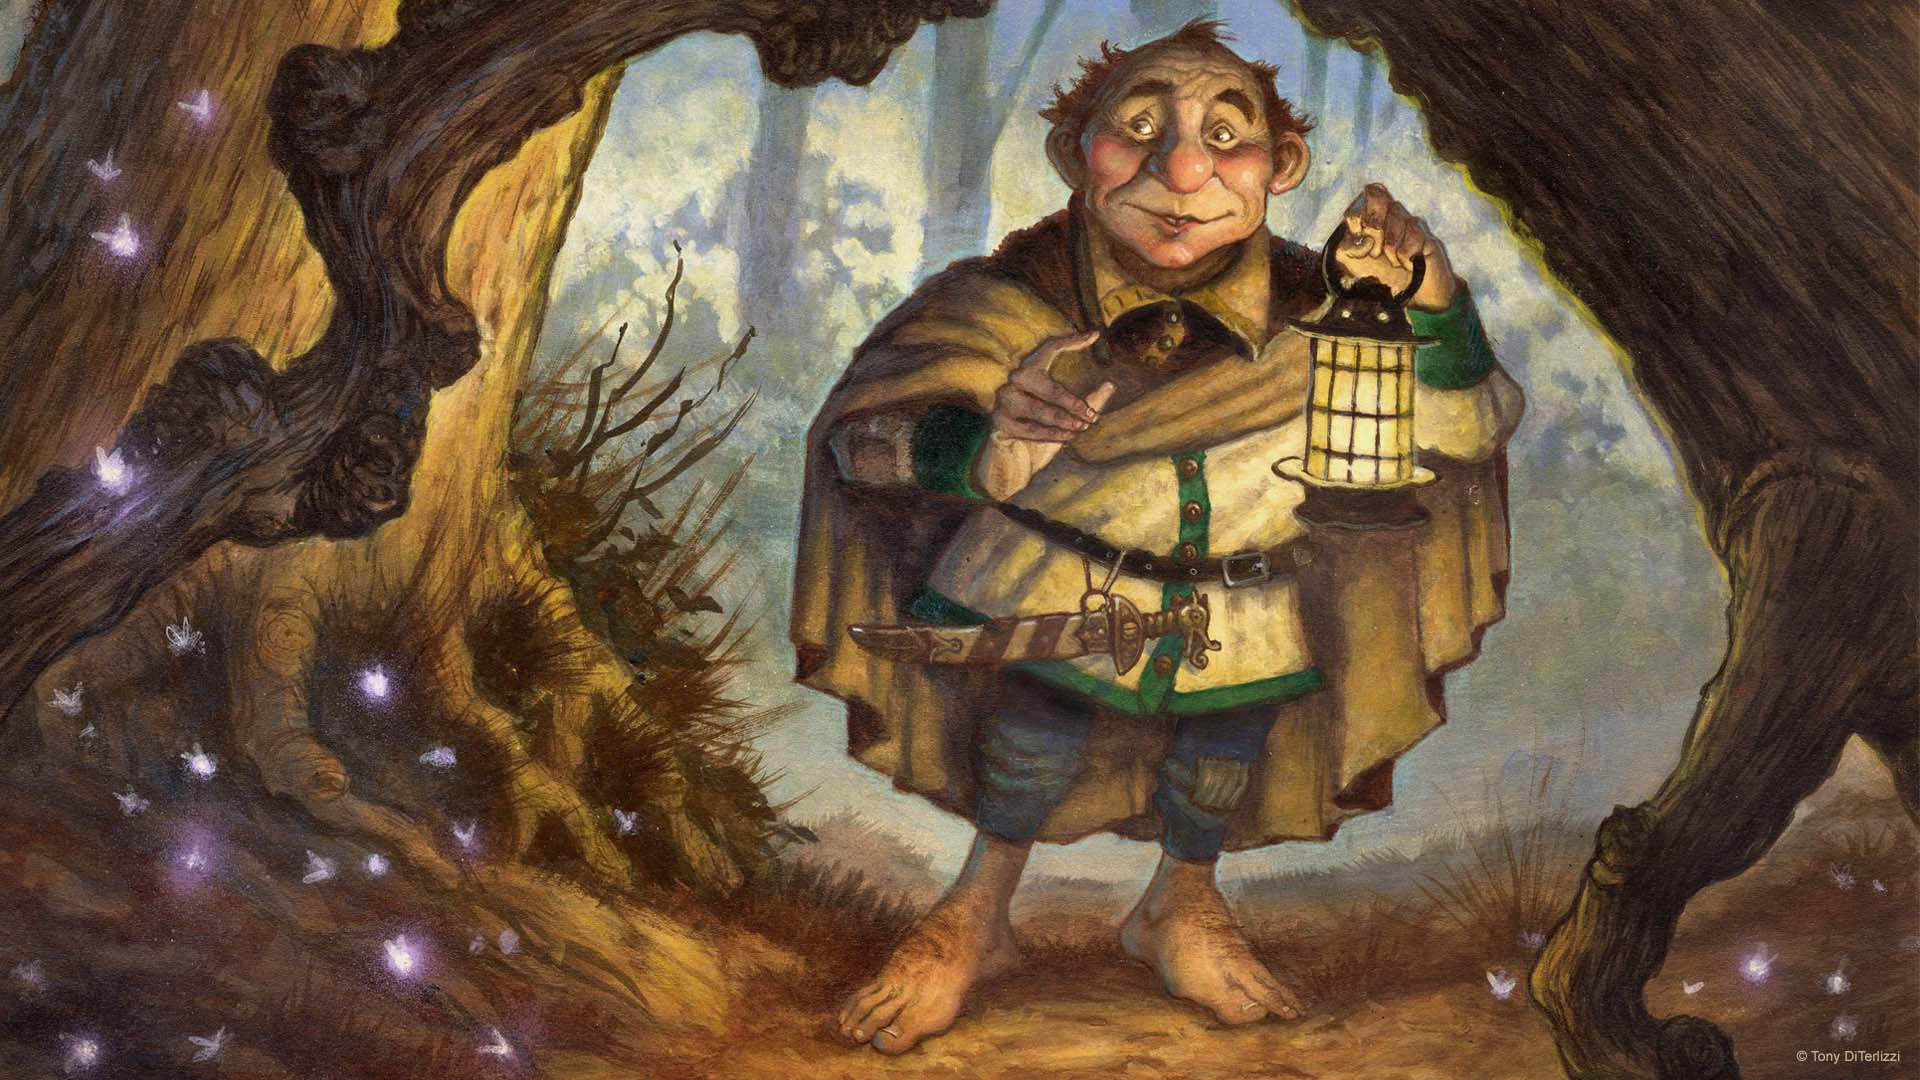 Dungeons Dragons And Magic The Gathering Tony Diterlizzi